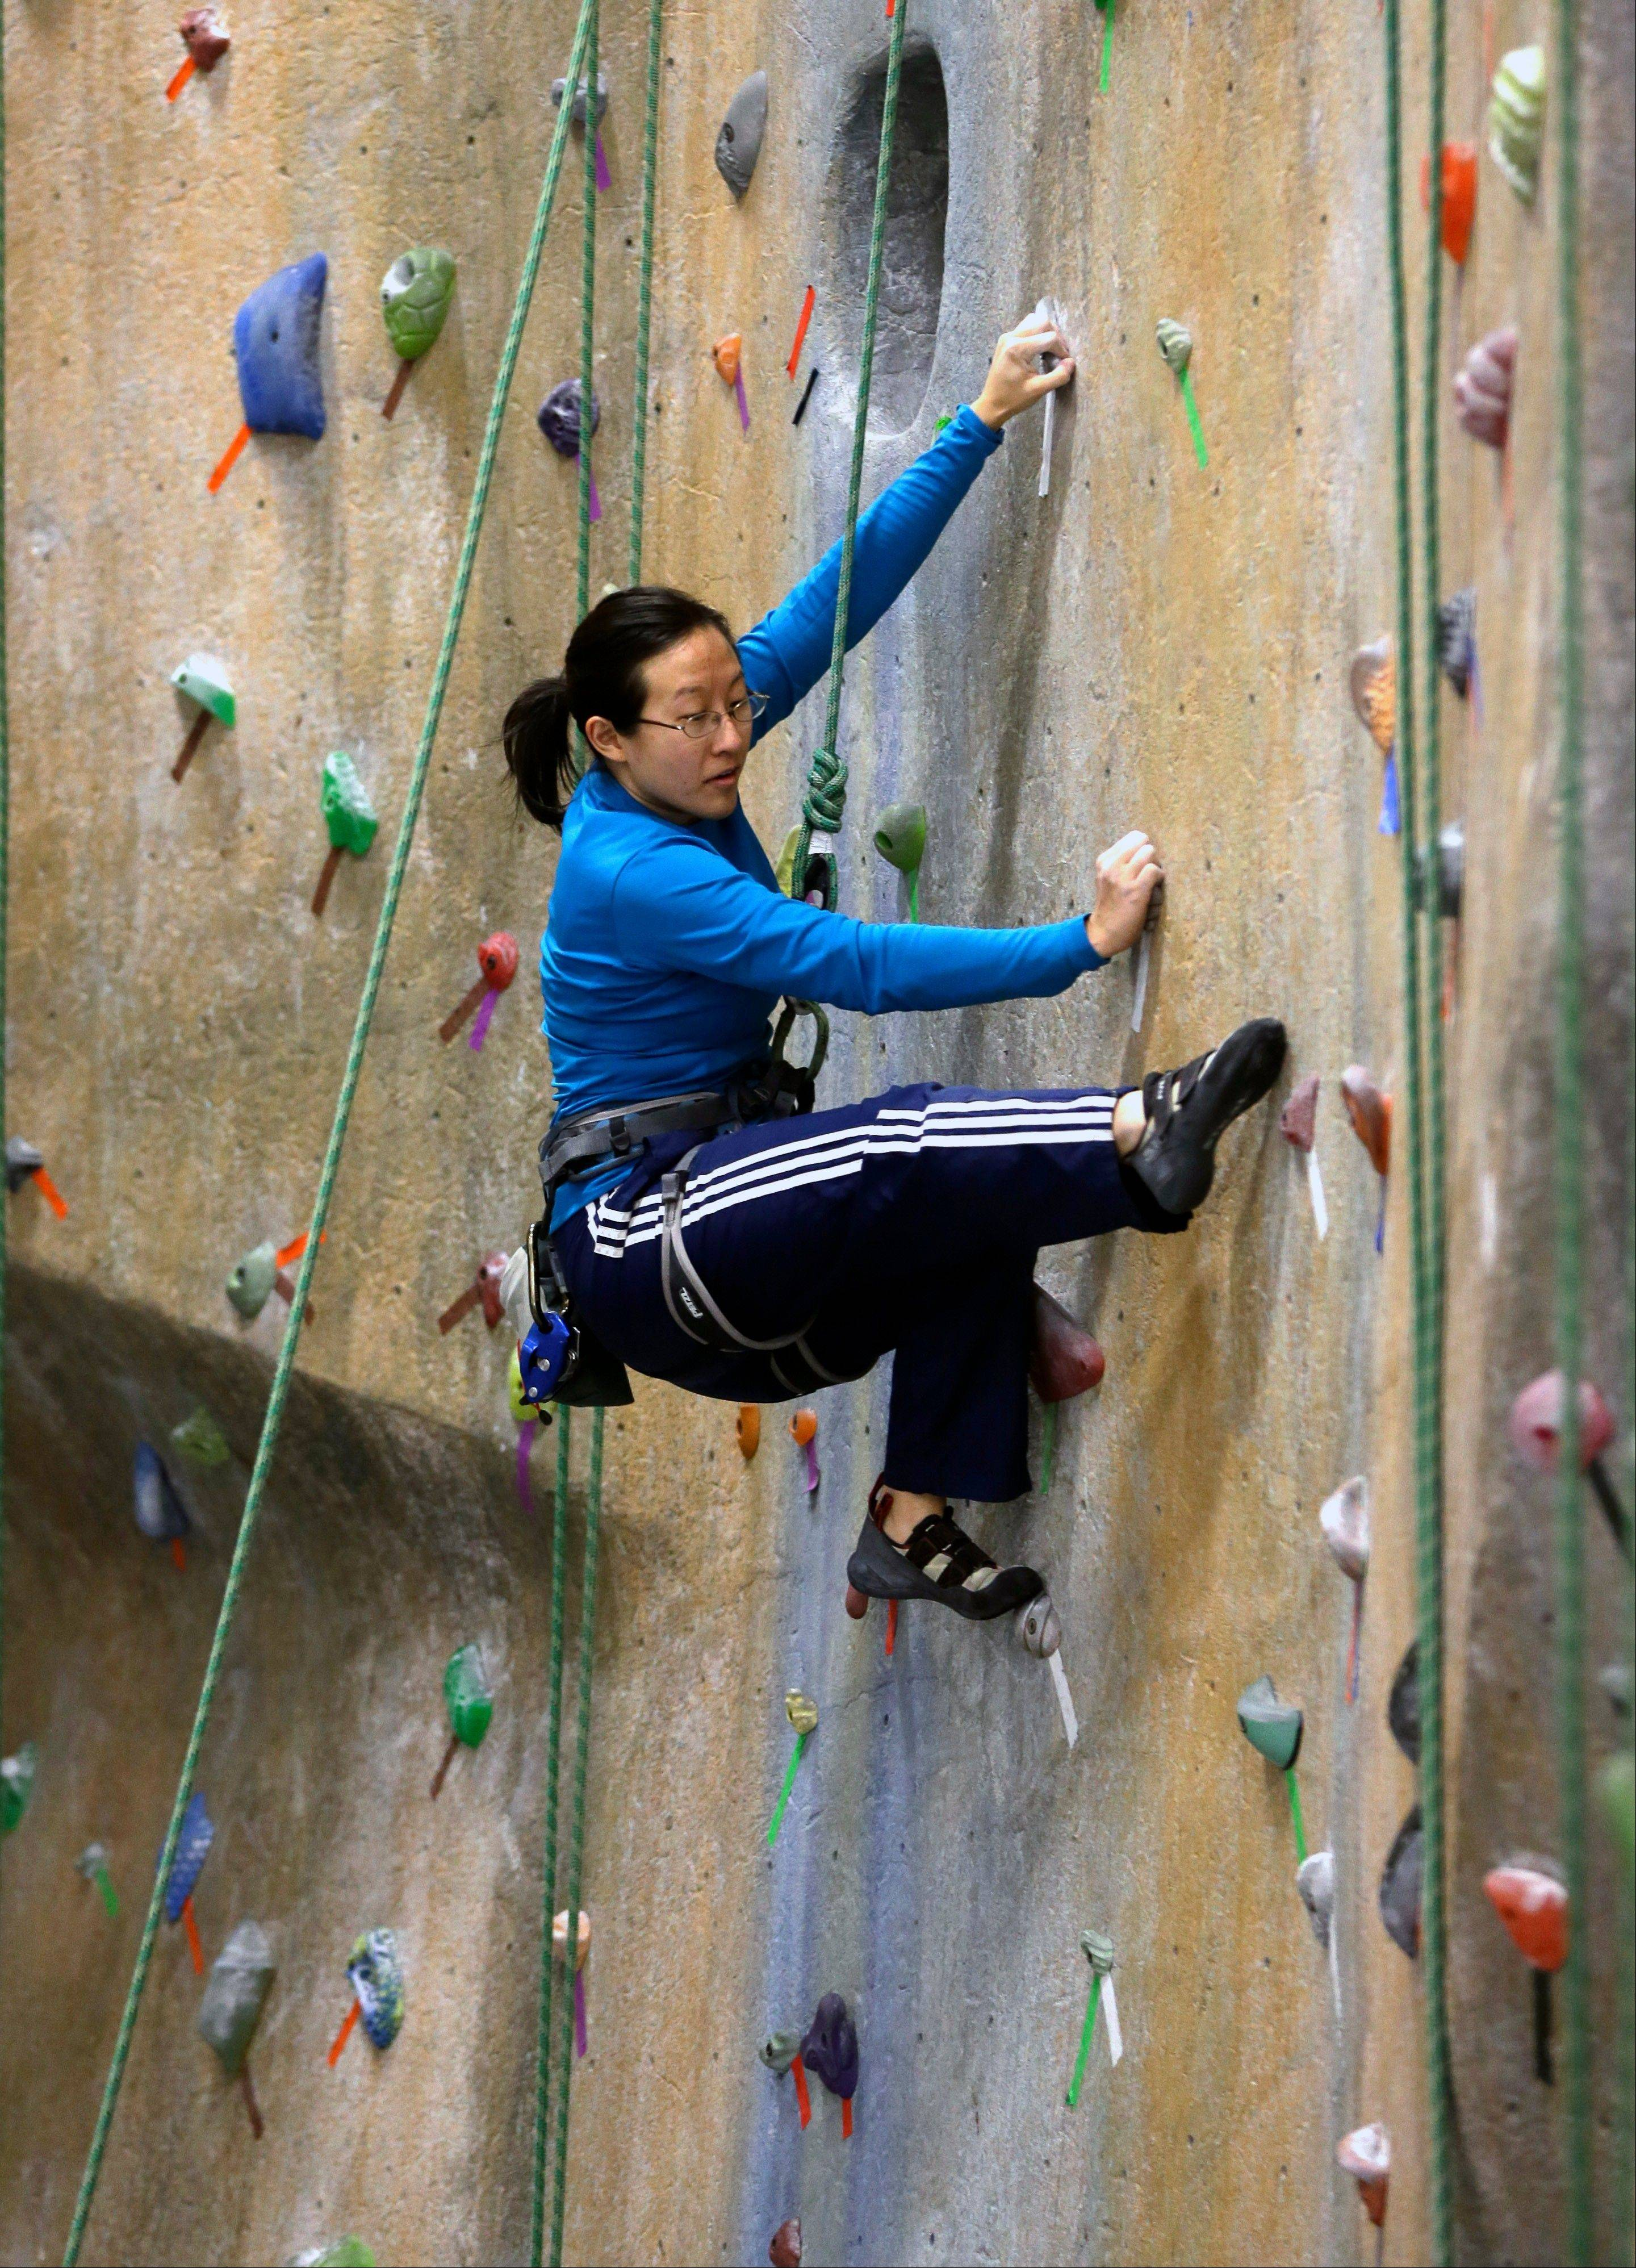 Joyce Lu of Albany, N.Y., scales a wall at The Edge Halfmoon indoor climbing center in Halfmoon, N.Y. The number of indoor climbing gyms has exploded in the past decade.